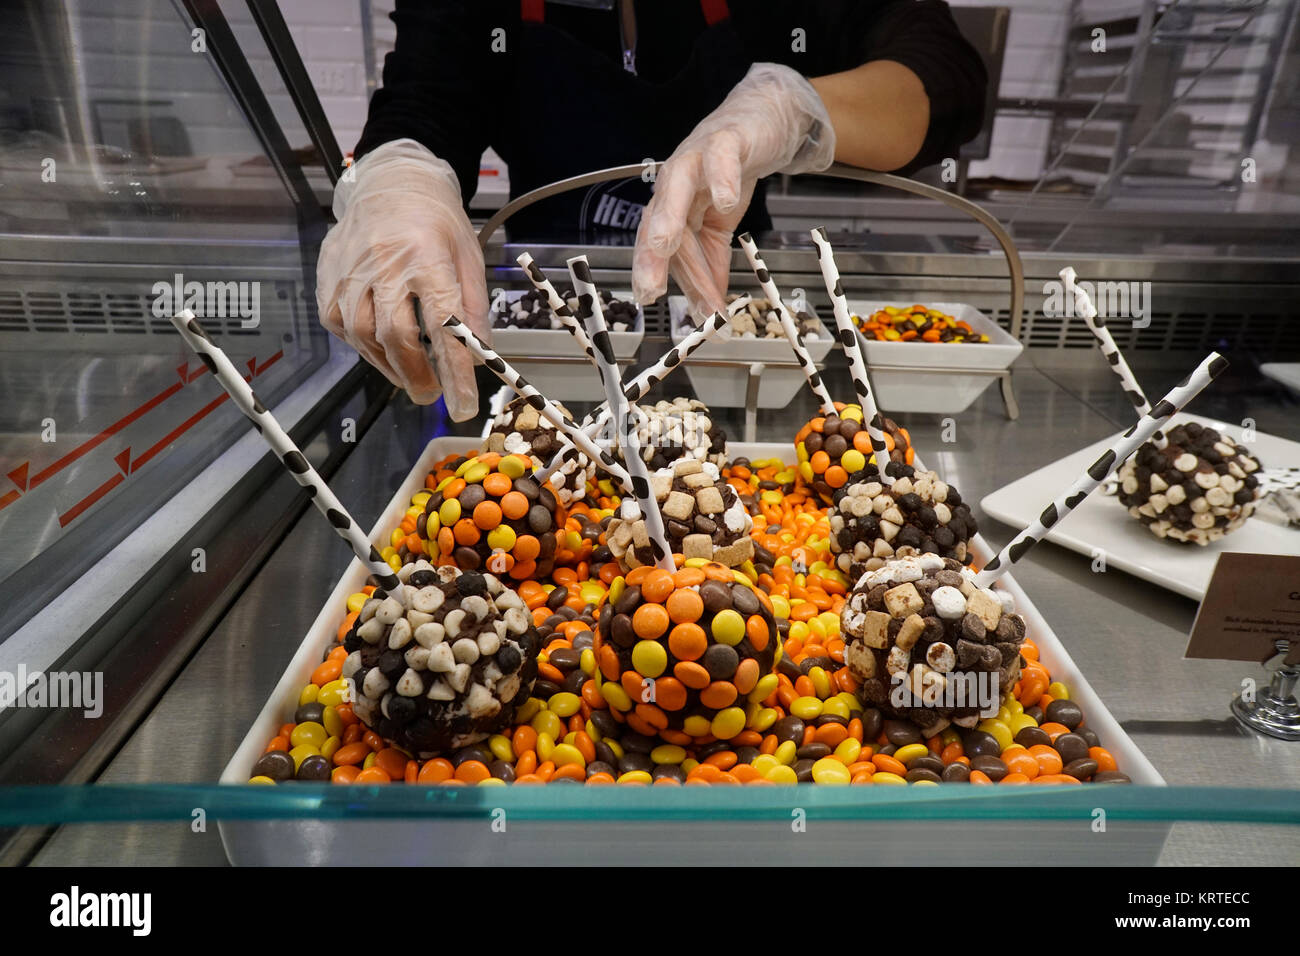 Candies Chocolate Sweet Usa Stock Photos & Candies Chocolate Sweet ...